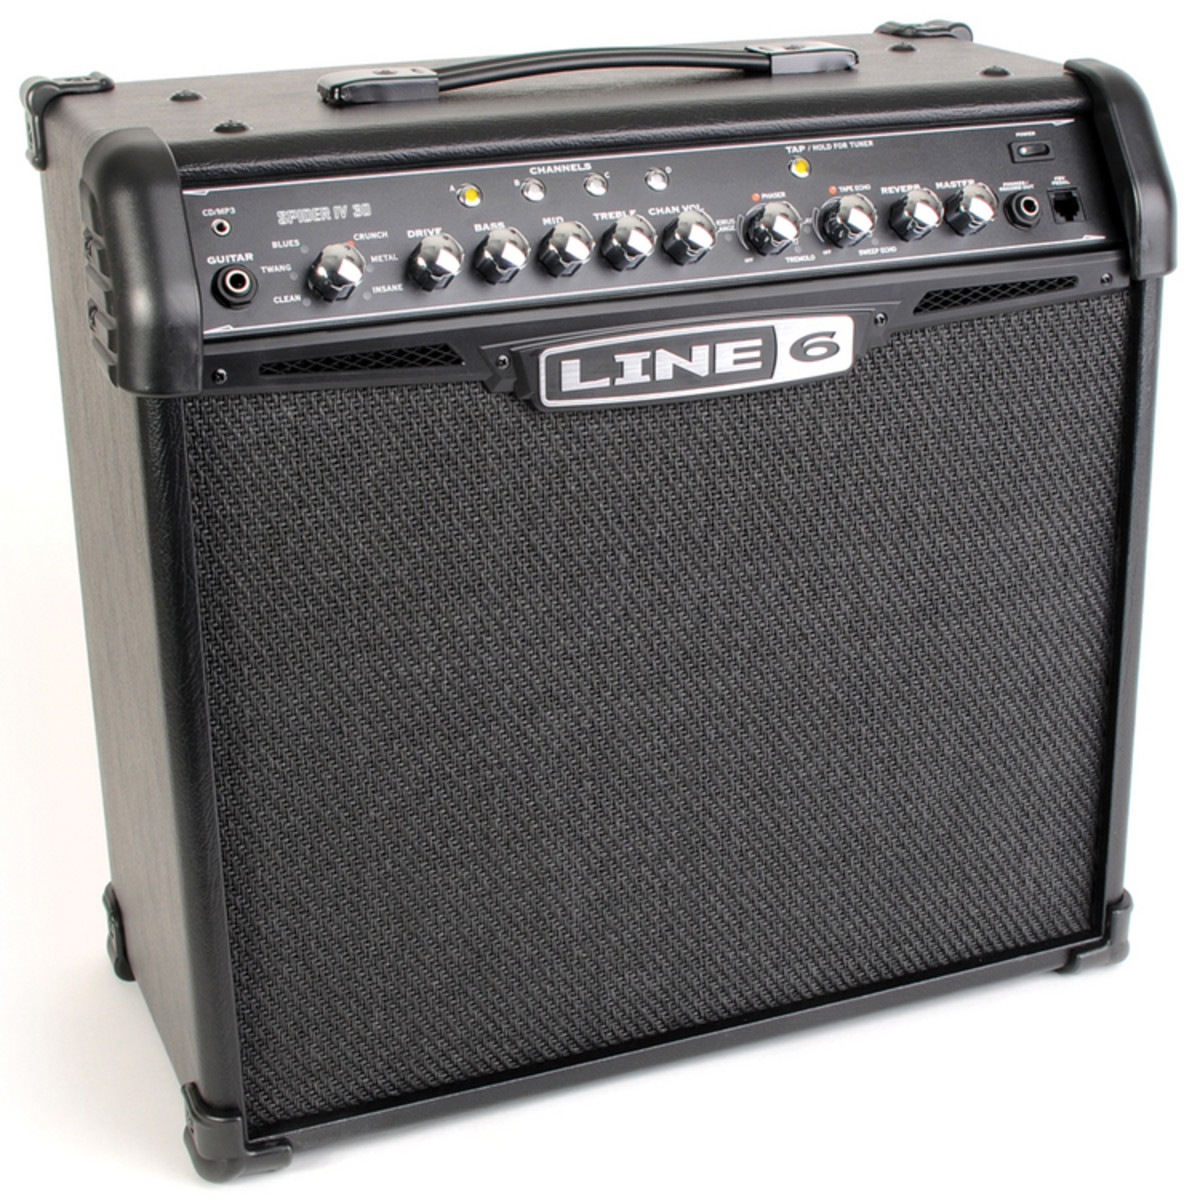 line 6 spider iv 30 guitar combo amp at gear4music. Black Bedroom Furniture Sets. Home Design Ideas